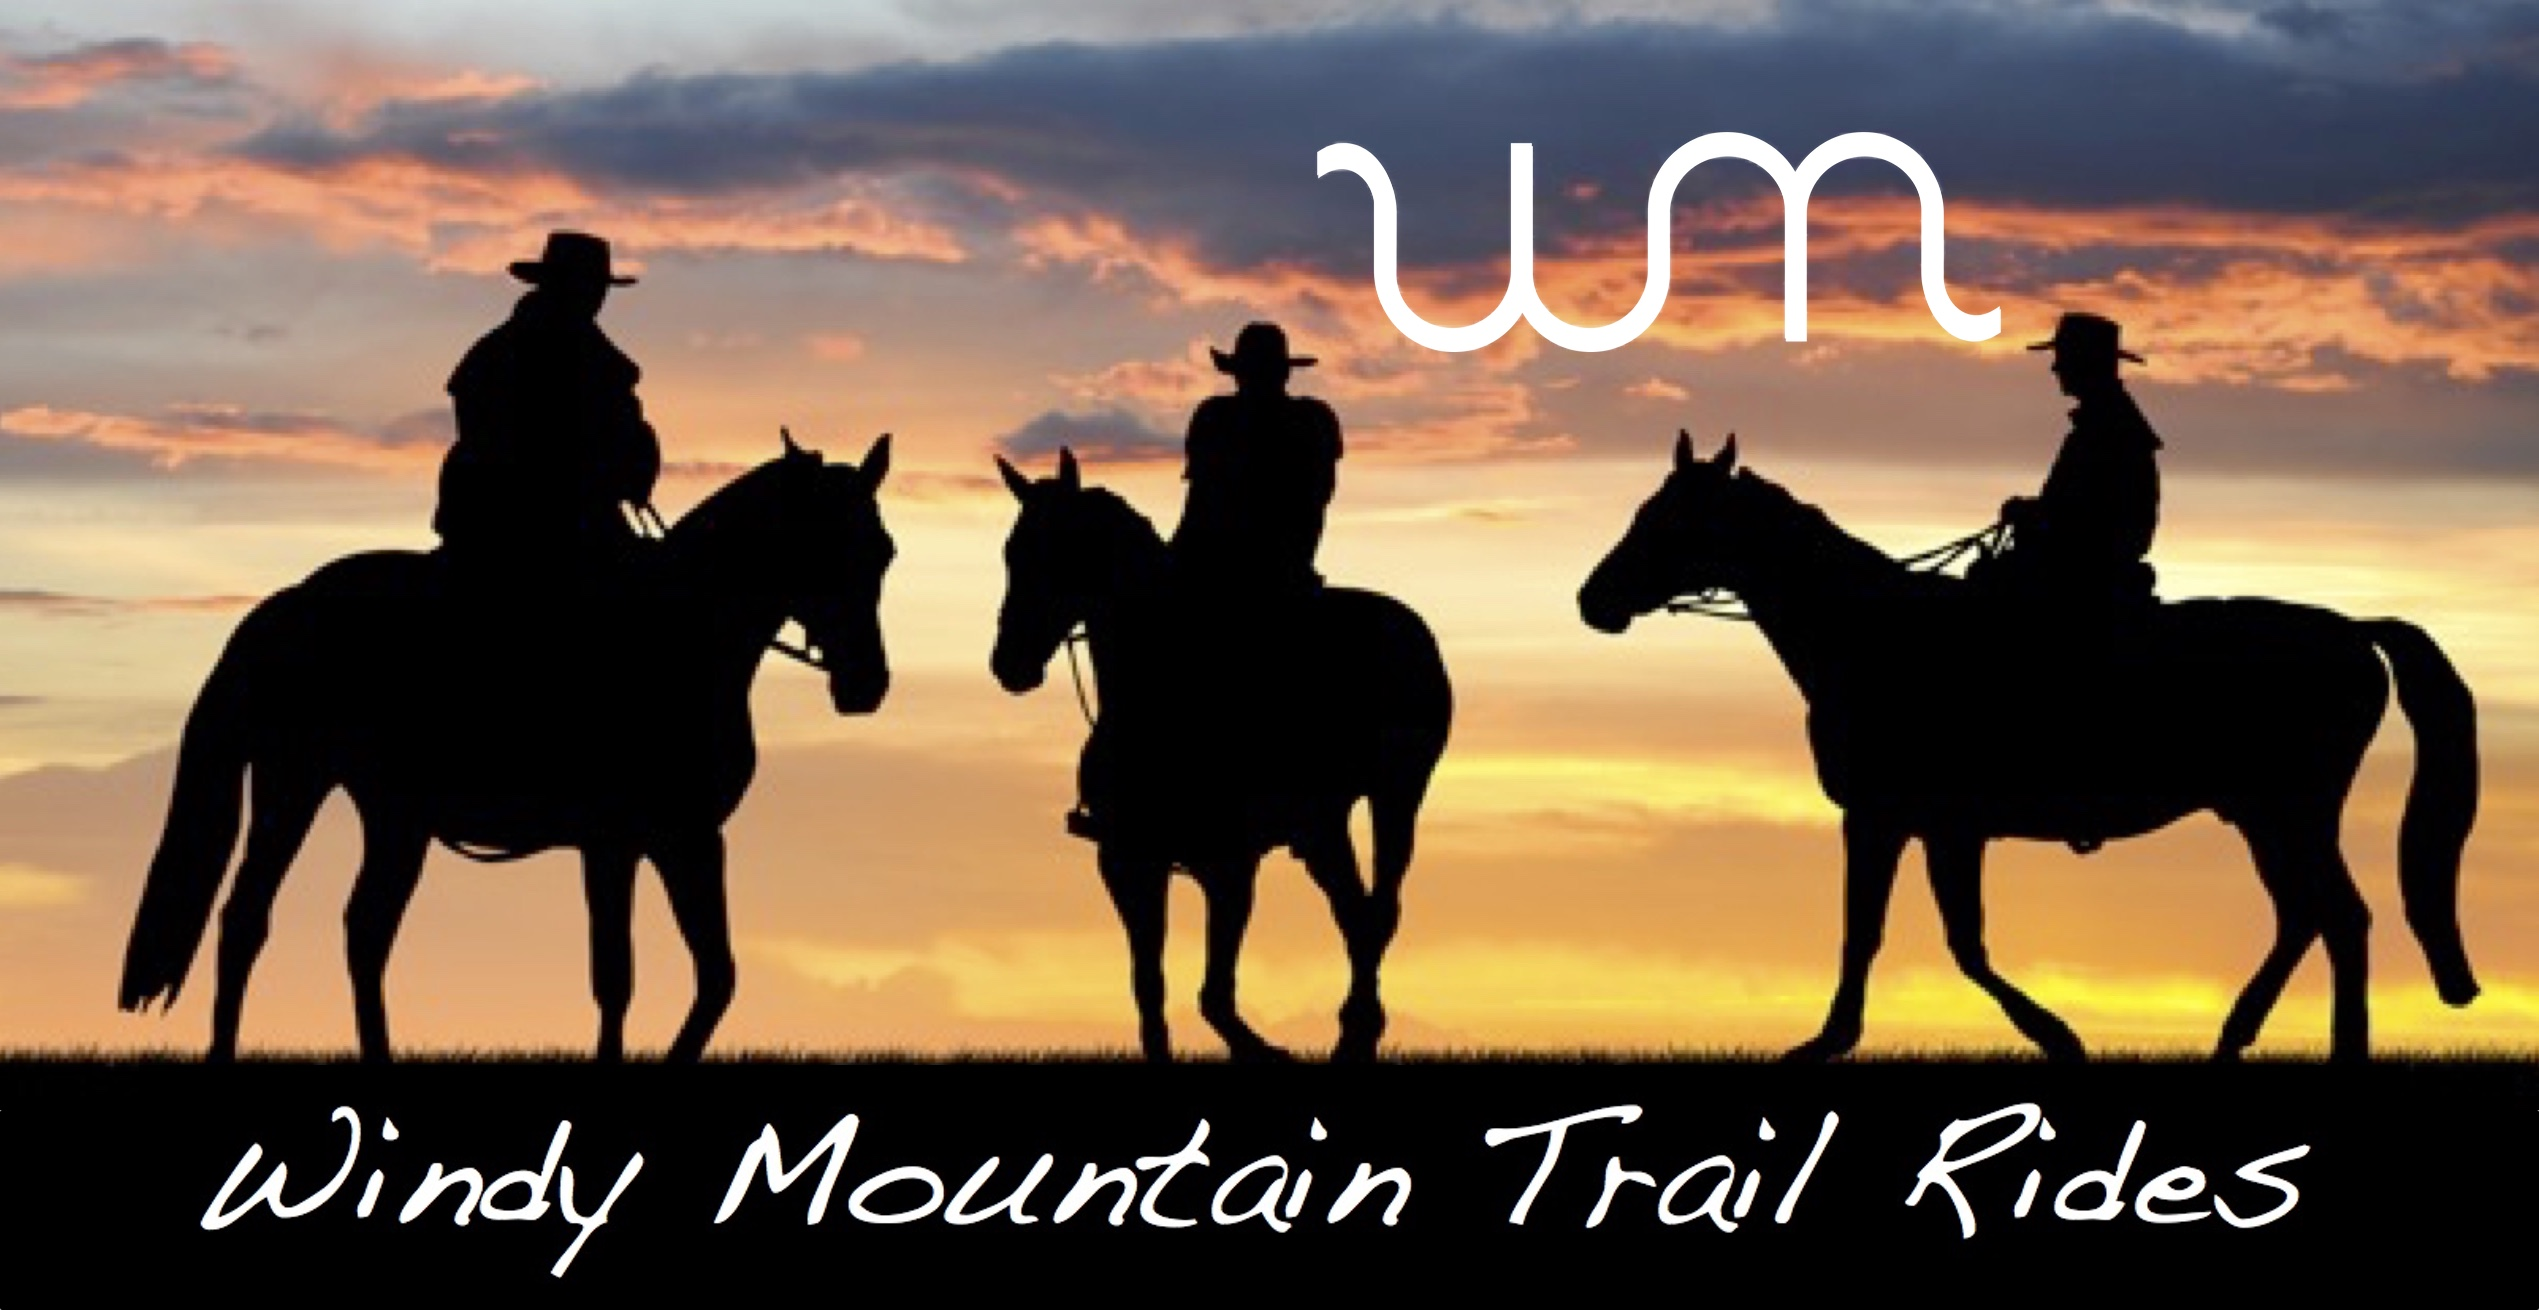 Windy Mountain Trail Rides